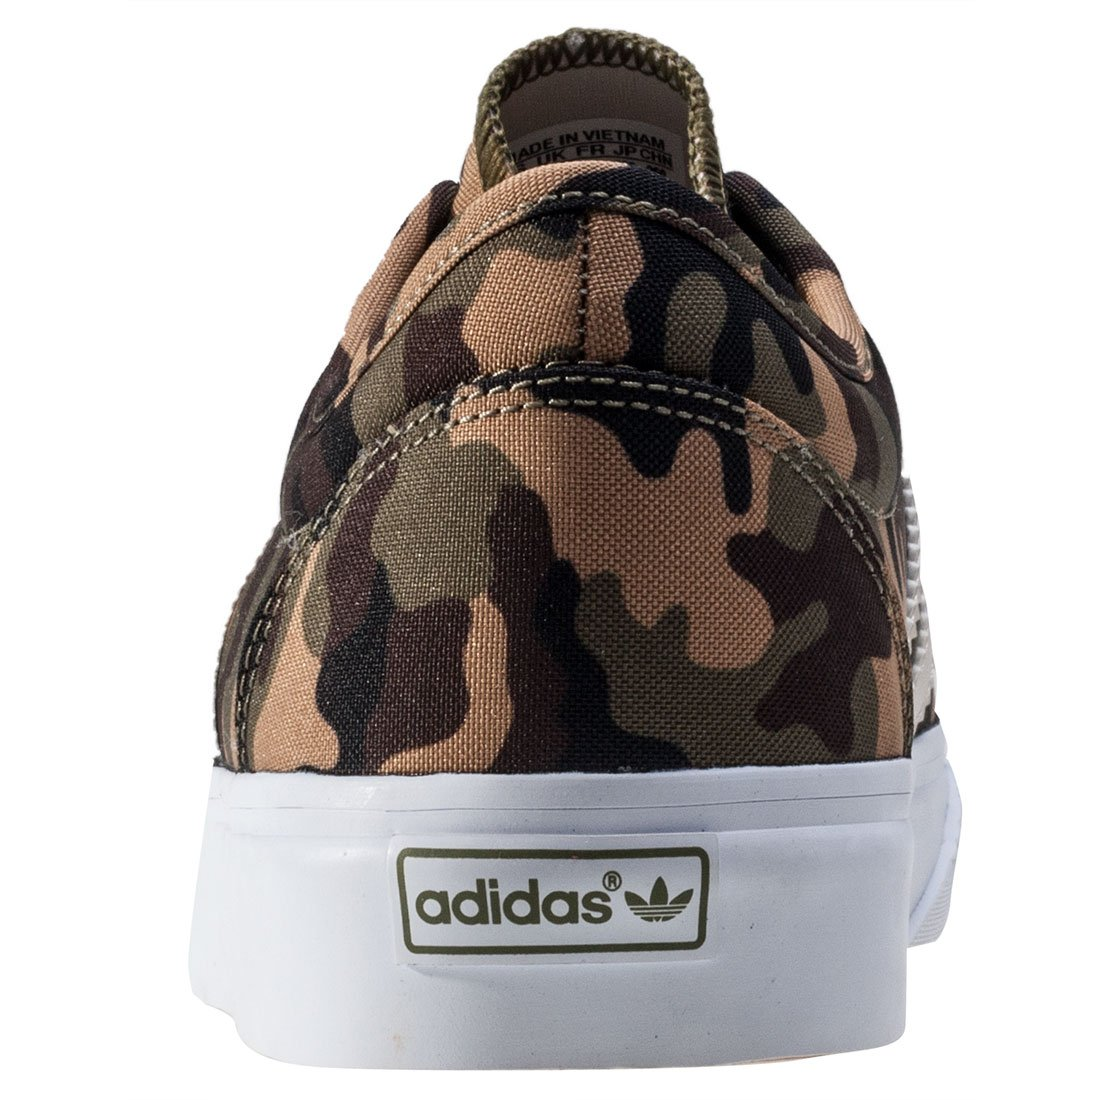 Ease Sacs Et Adidas Adi Hommes BasketsChaussures ChtsQrd